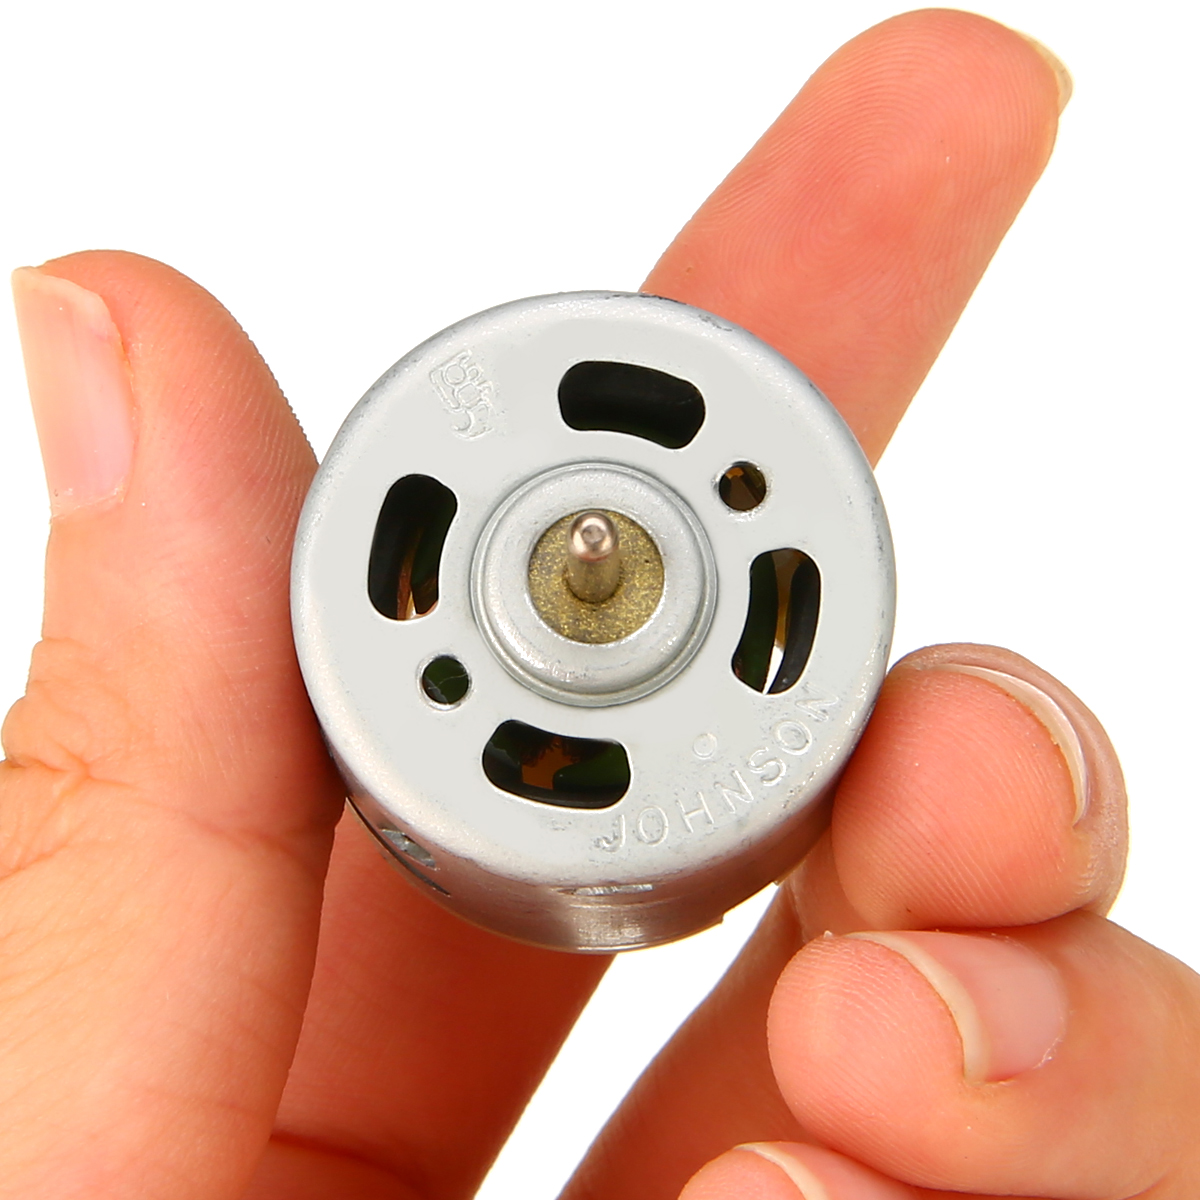 High Speed 5000RPM 6-12V DC Motor Hobby Mini DC Motor 365 Low Noise For DIY Small Electric Drill Motor Diameter 27.5mm